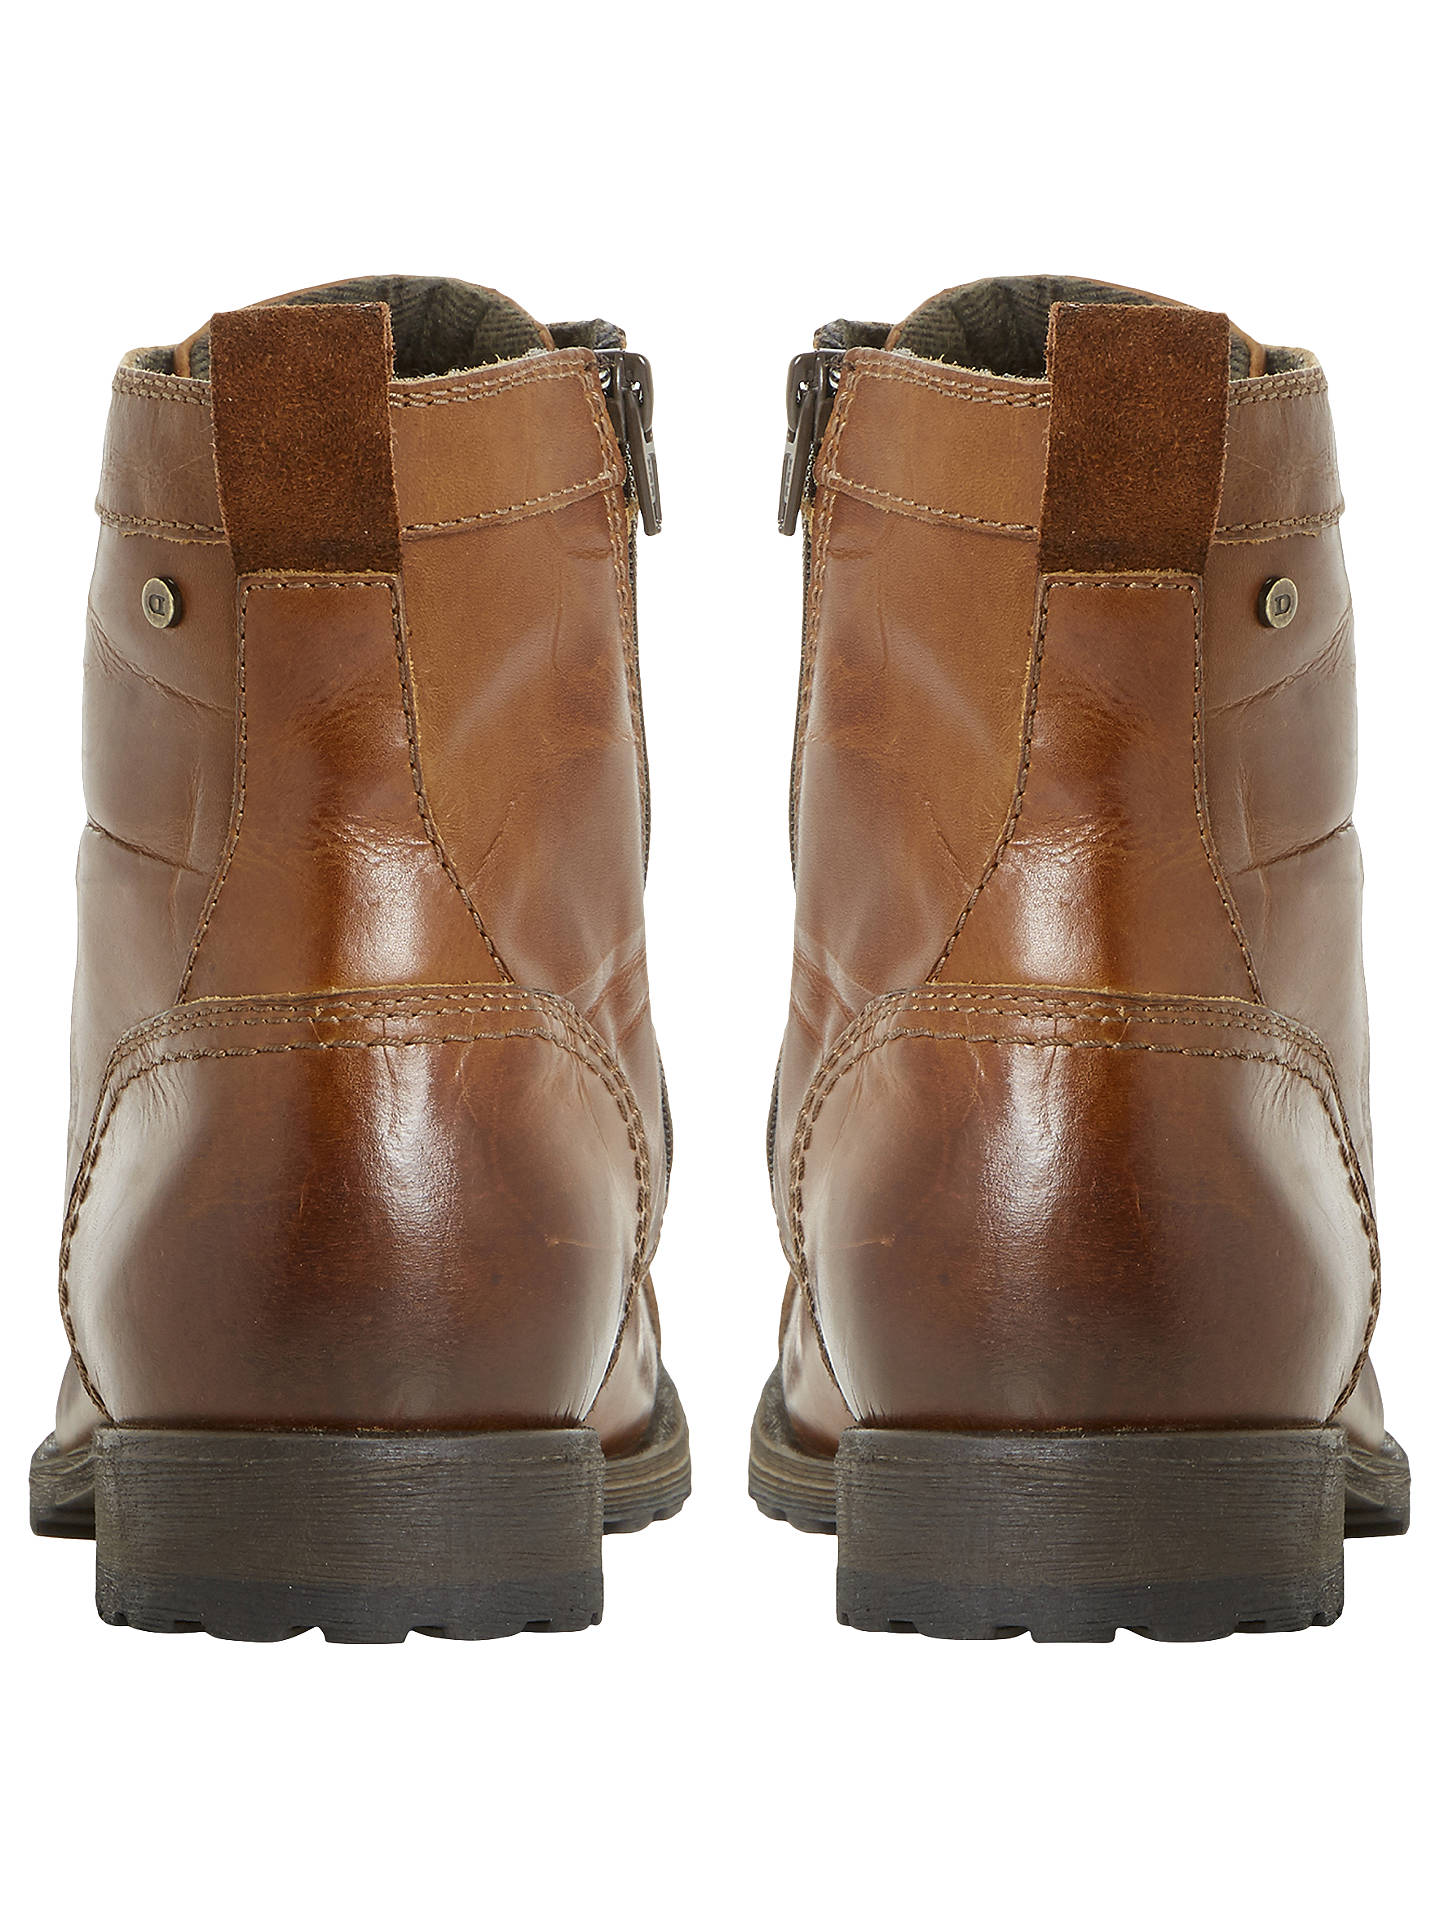 BuyDune Cowell Toe Cap Lace-Up Boots, Tan, 6 Online at johnlewis.com